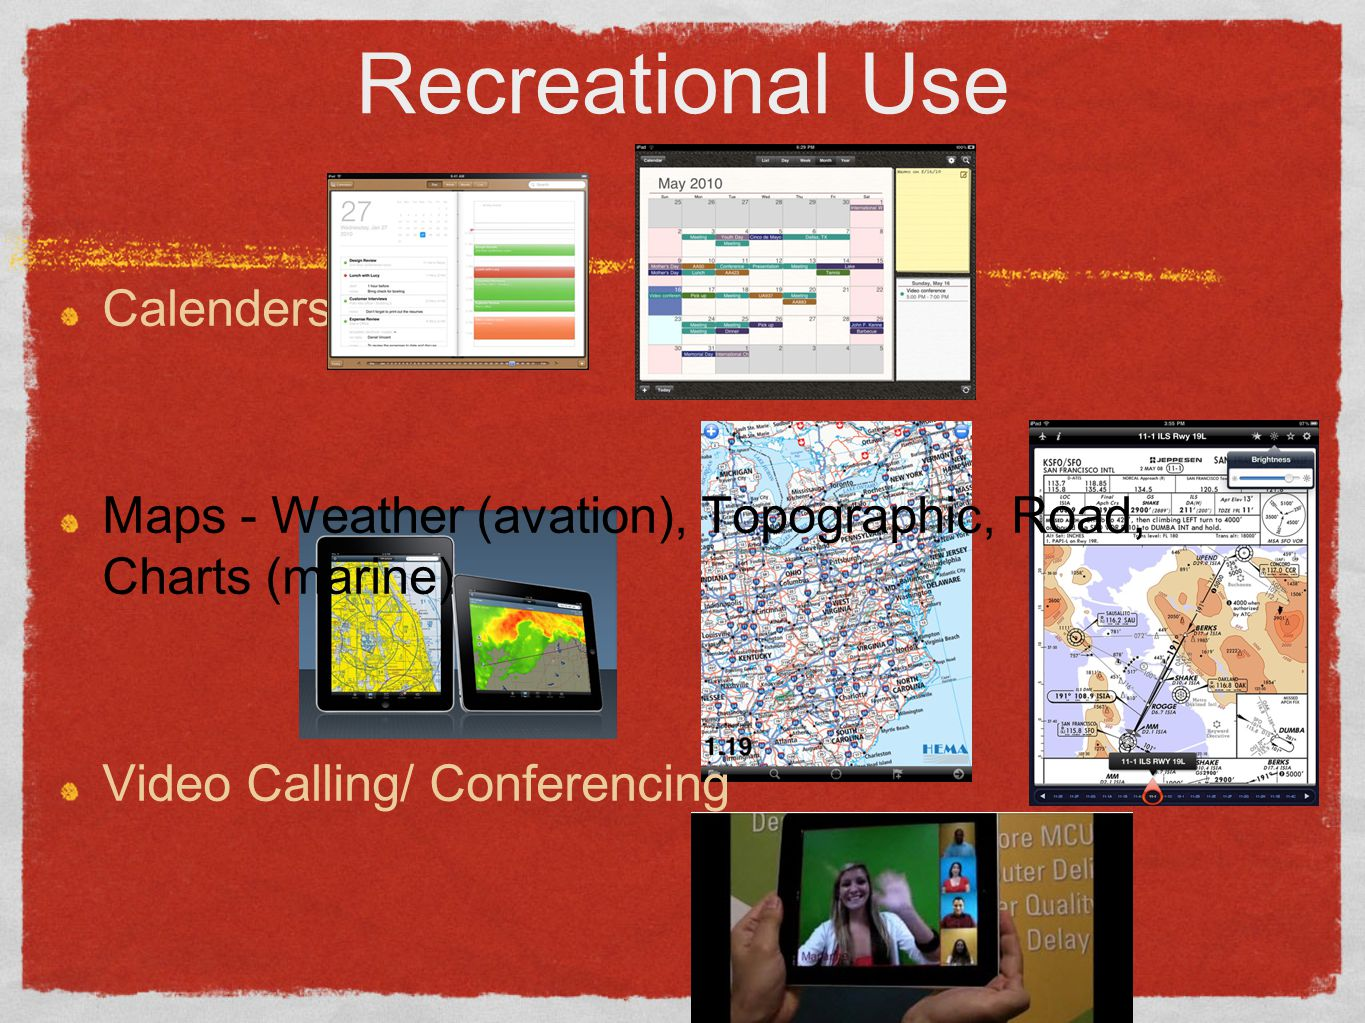 Recreational Use (Part deux) Games Garage Band - Plug in or use Apple TV, Airplay